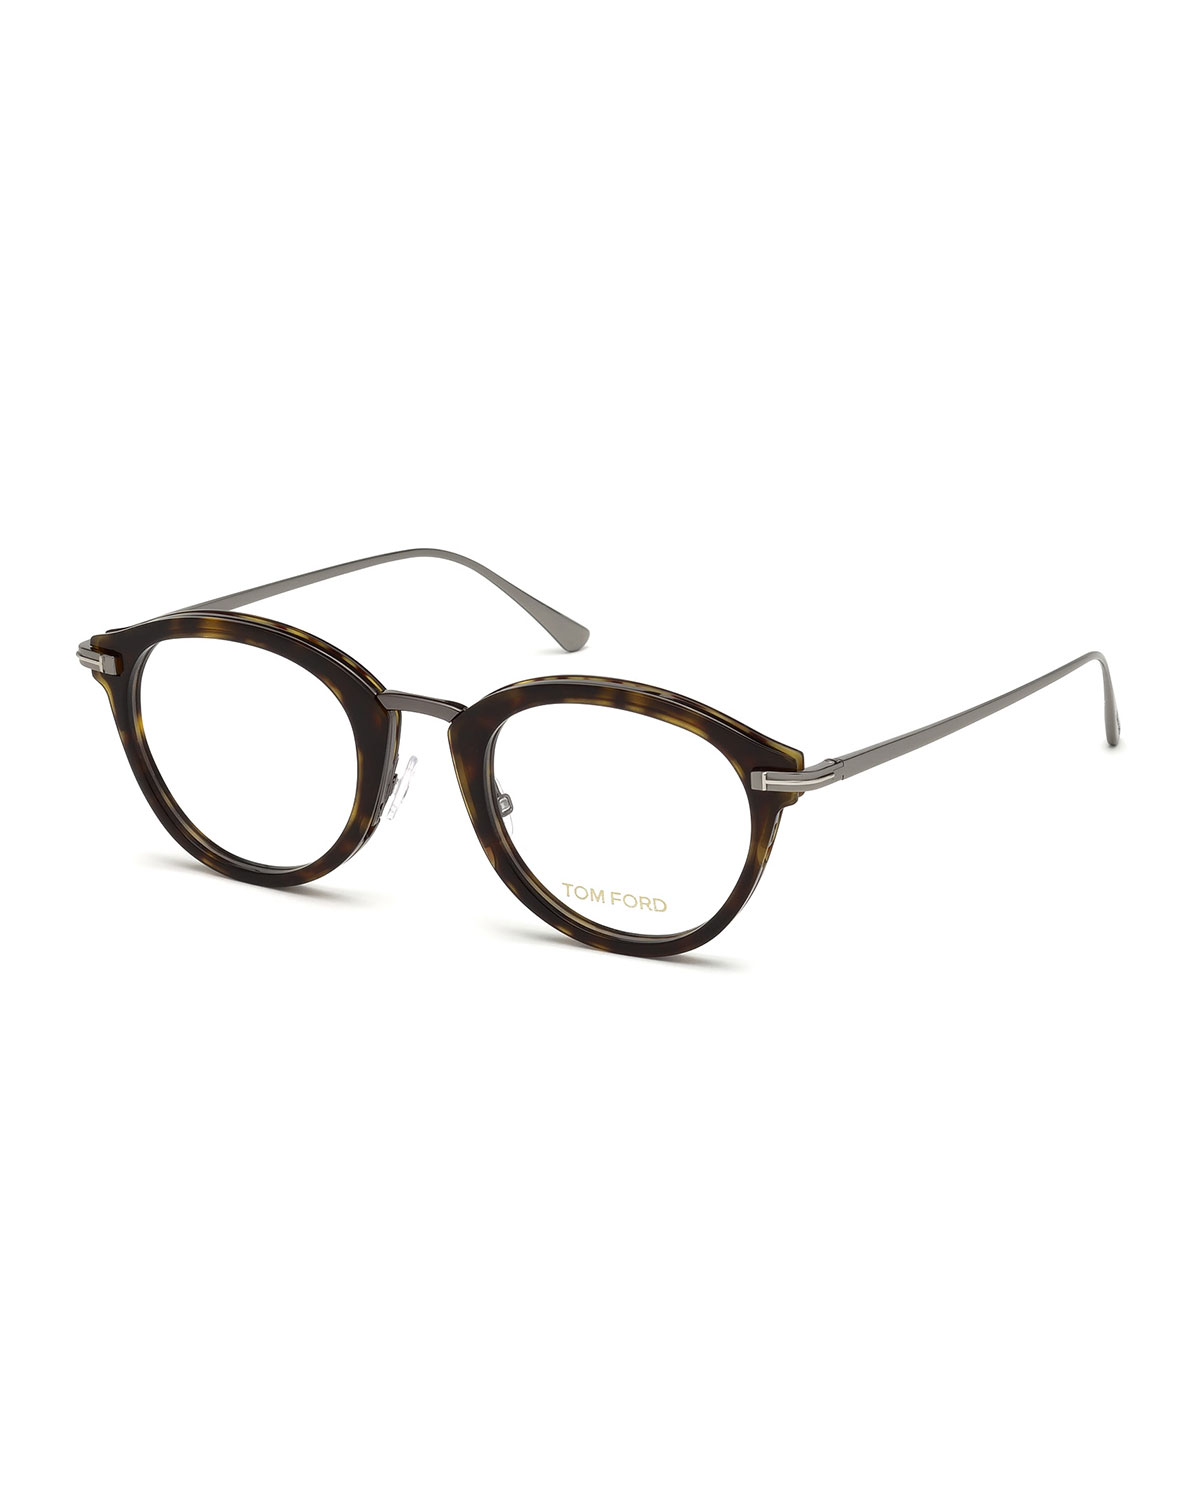 TOM FORD Oval Acetate & Metal Optical Frames, Brown Pattern | Neiman ...